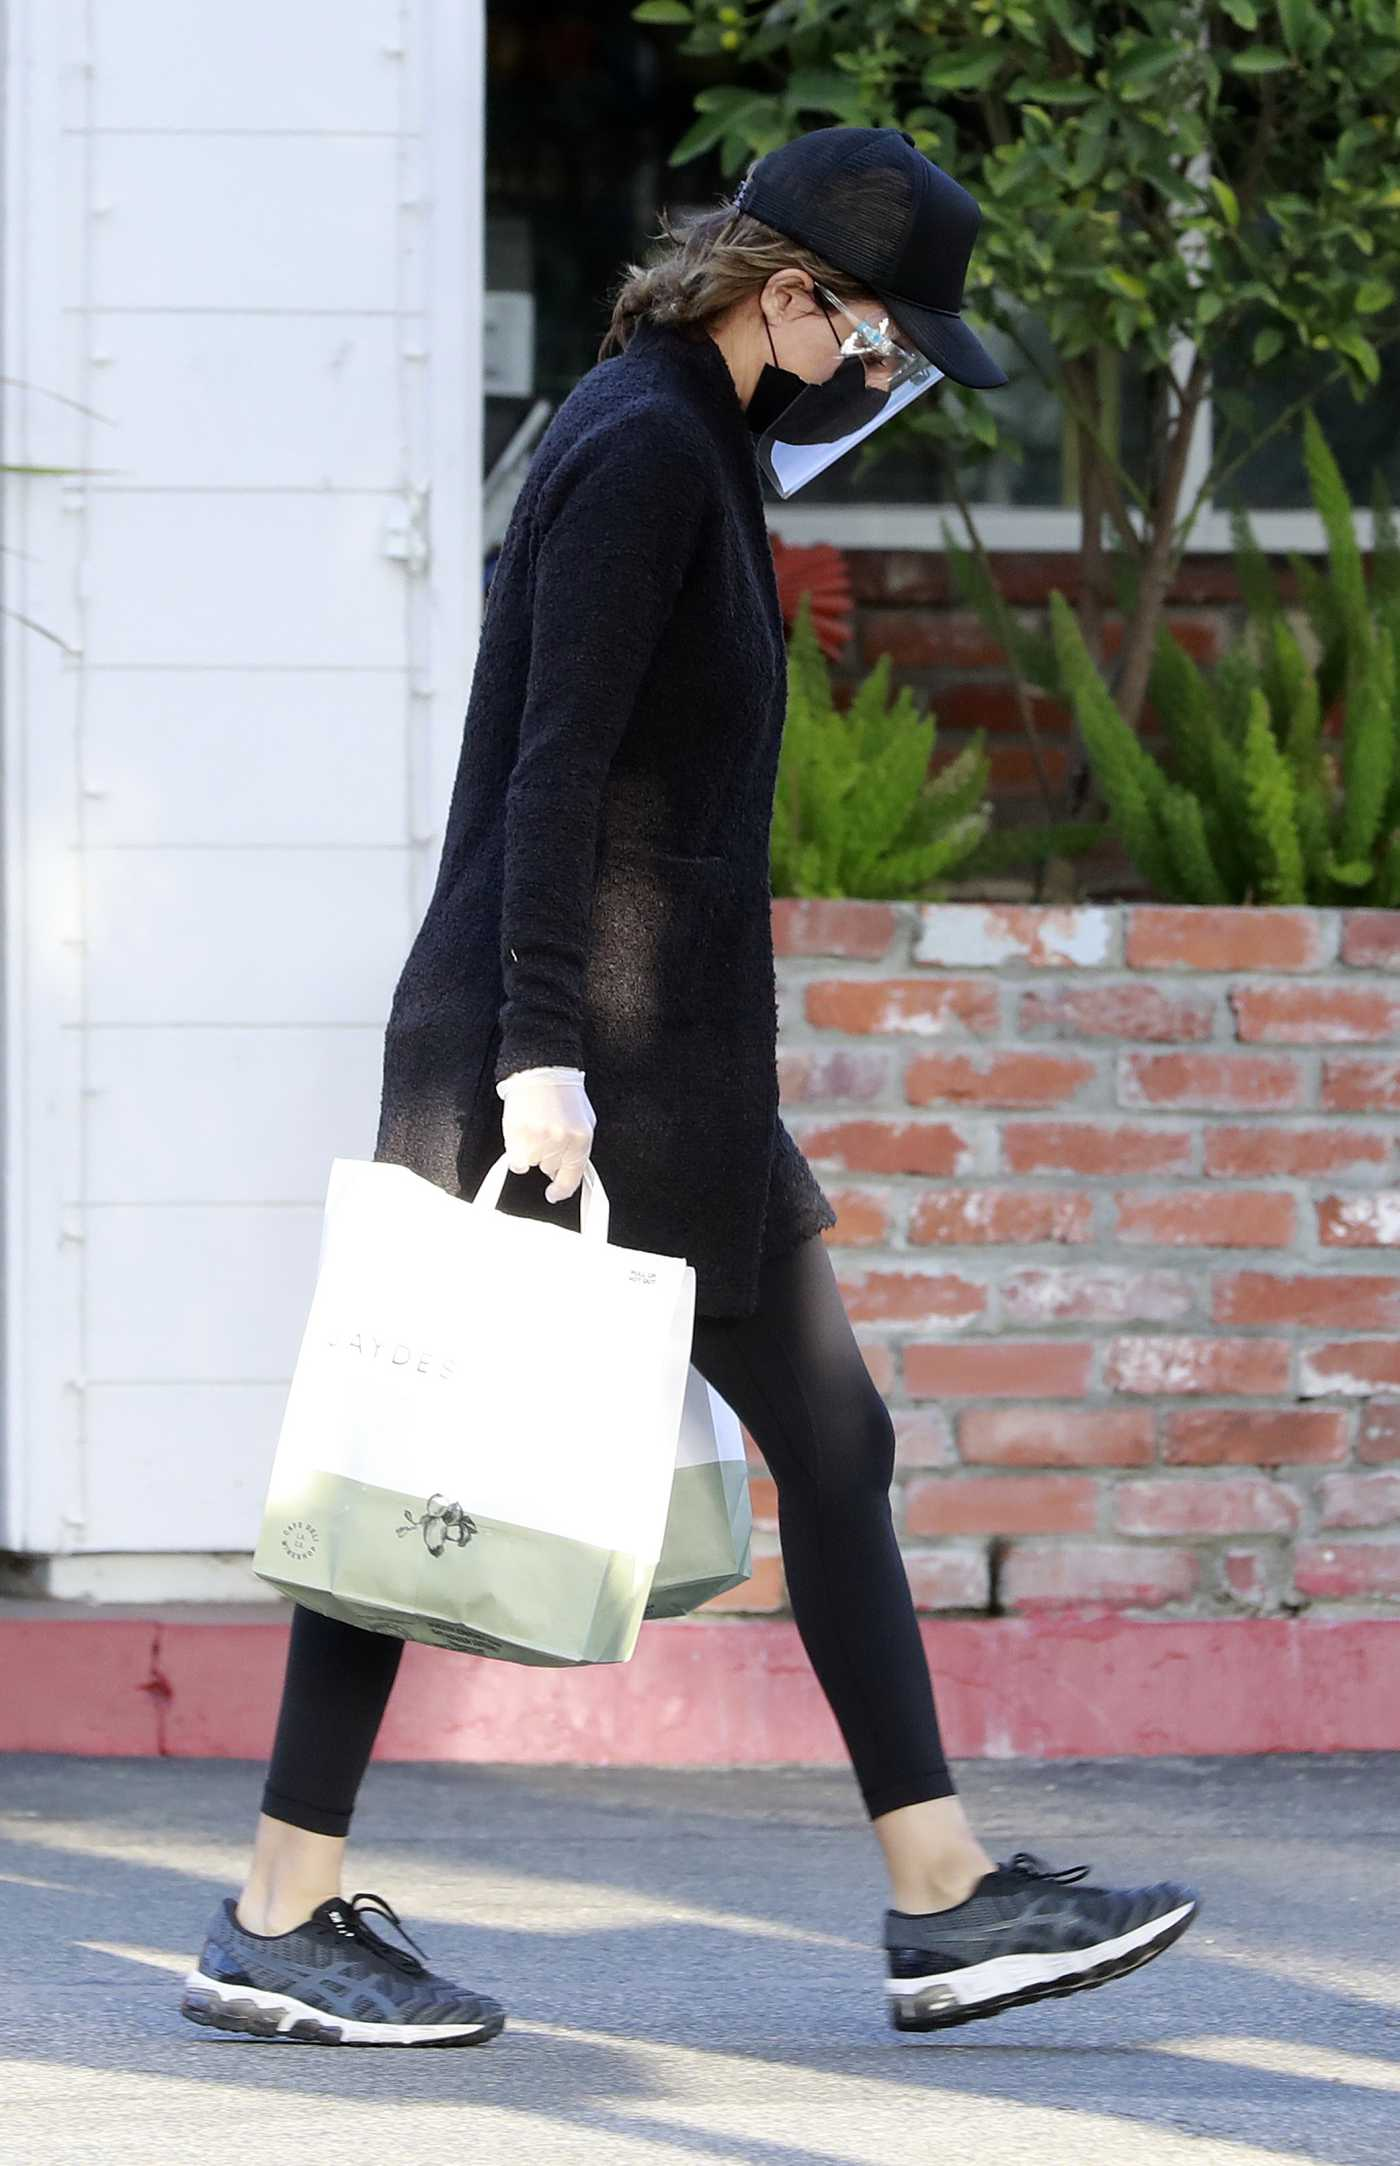 Lisa Rinna in a Black Cap Goes Shopping at the Glen Market in Los Angeles 12/11/2020